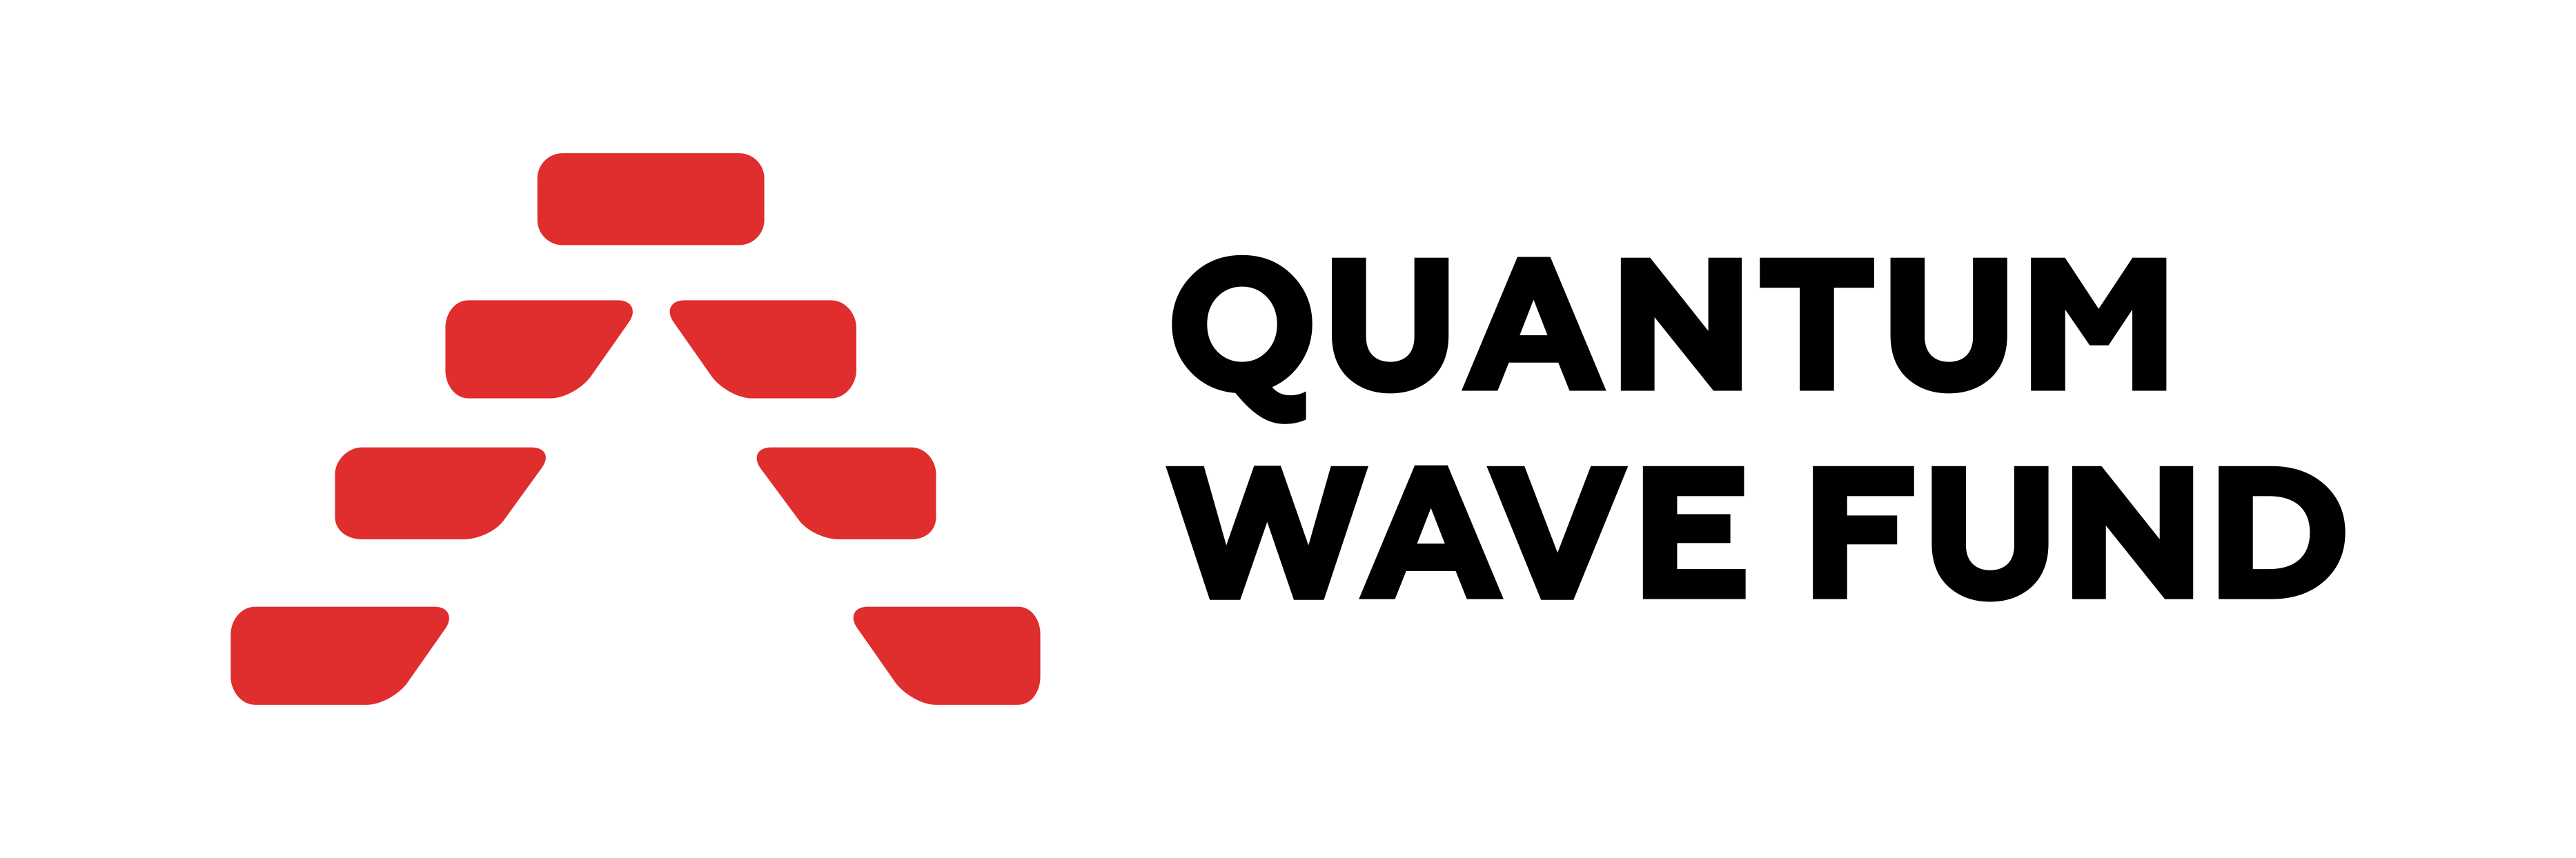 Quantum Wave Fund